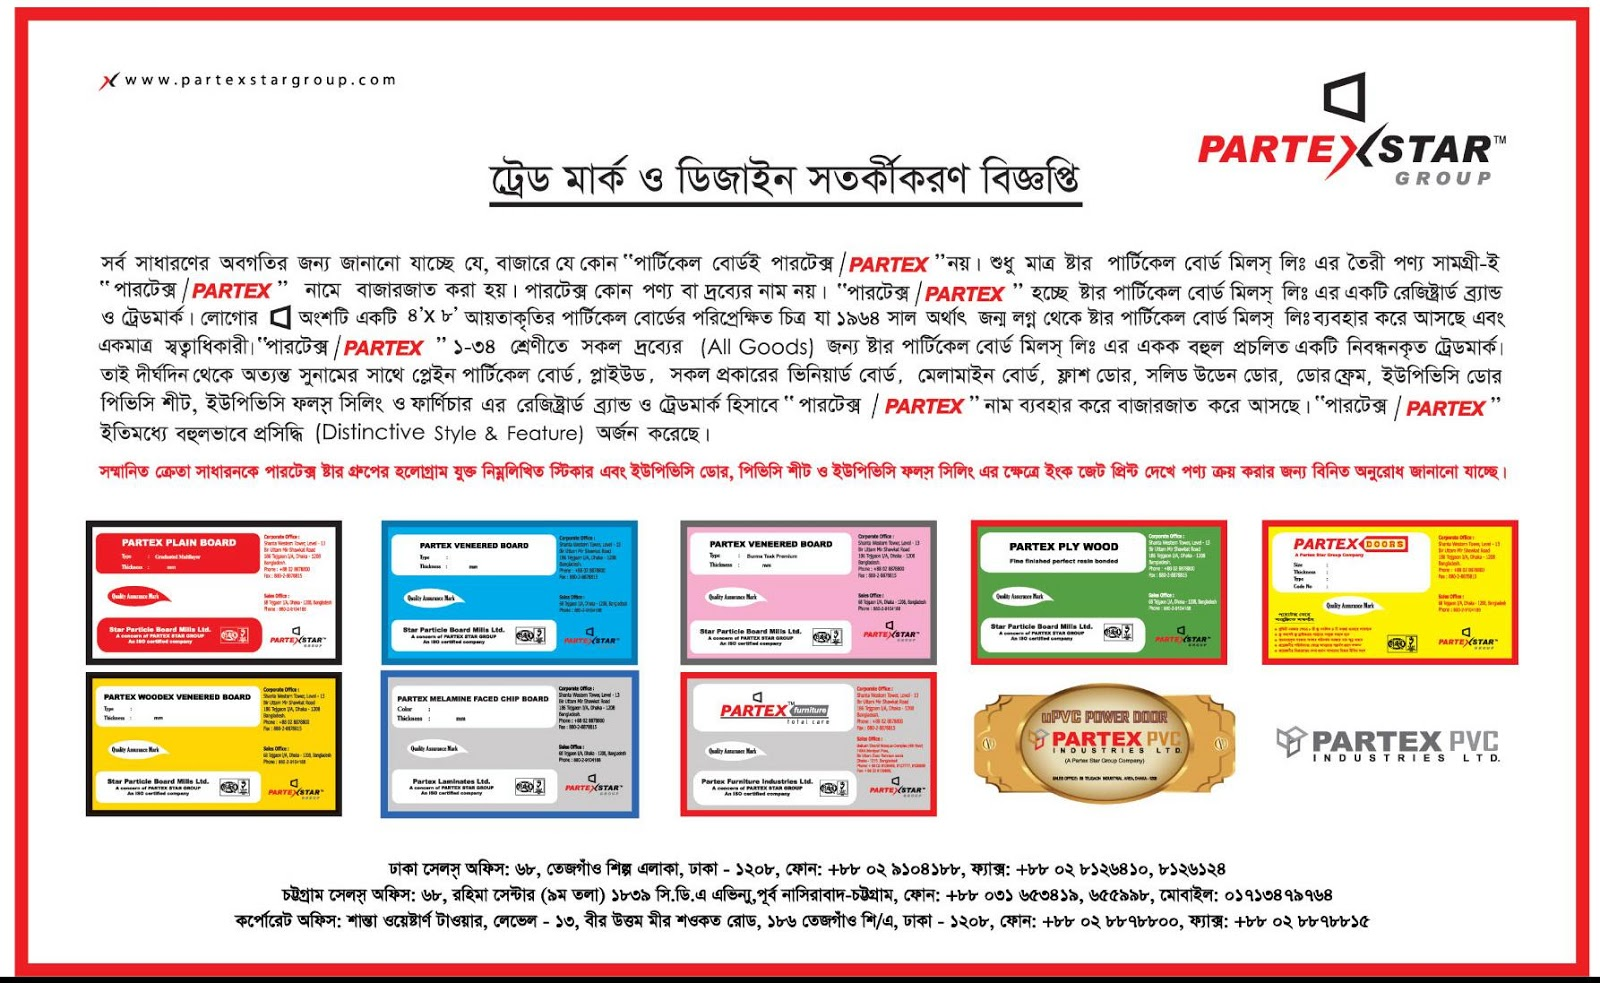 partex group of bangladesh Shubornobhumi housing ltd, popularly known as shl is a sister concern of partex star group (psg) psg is one of the largest bangladeshi diversified private sector enterprises the group started its journey in 1962 under the entrepreneurial leadership of m.